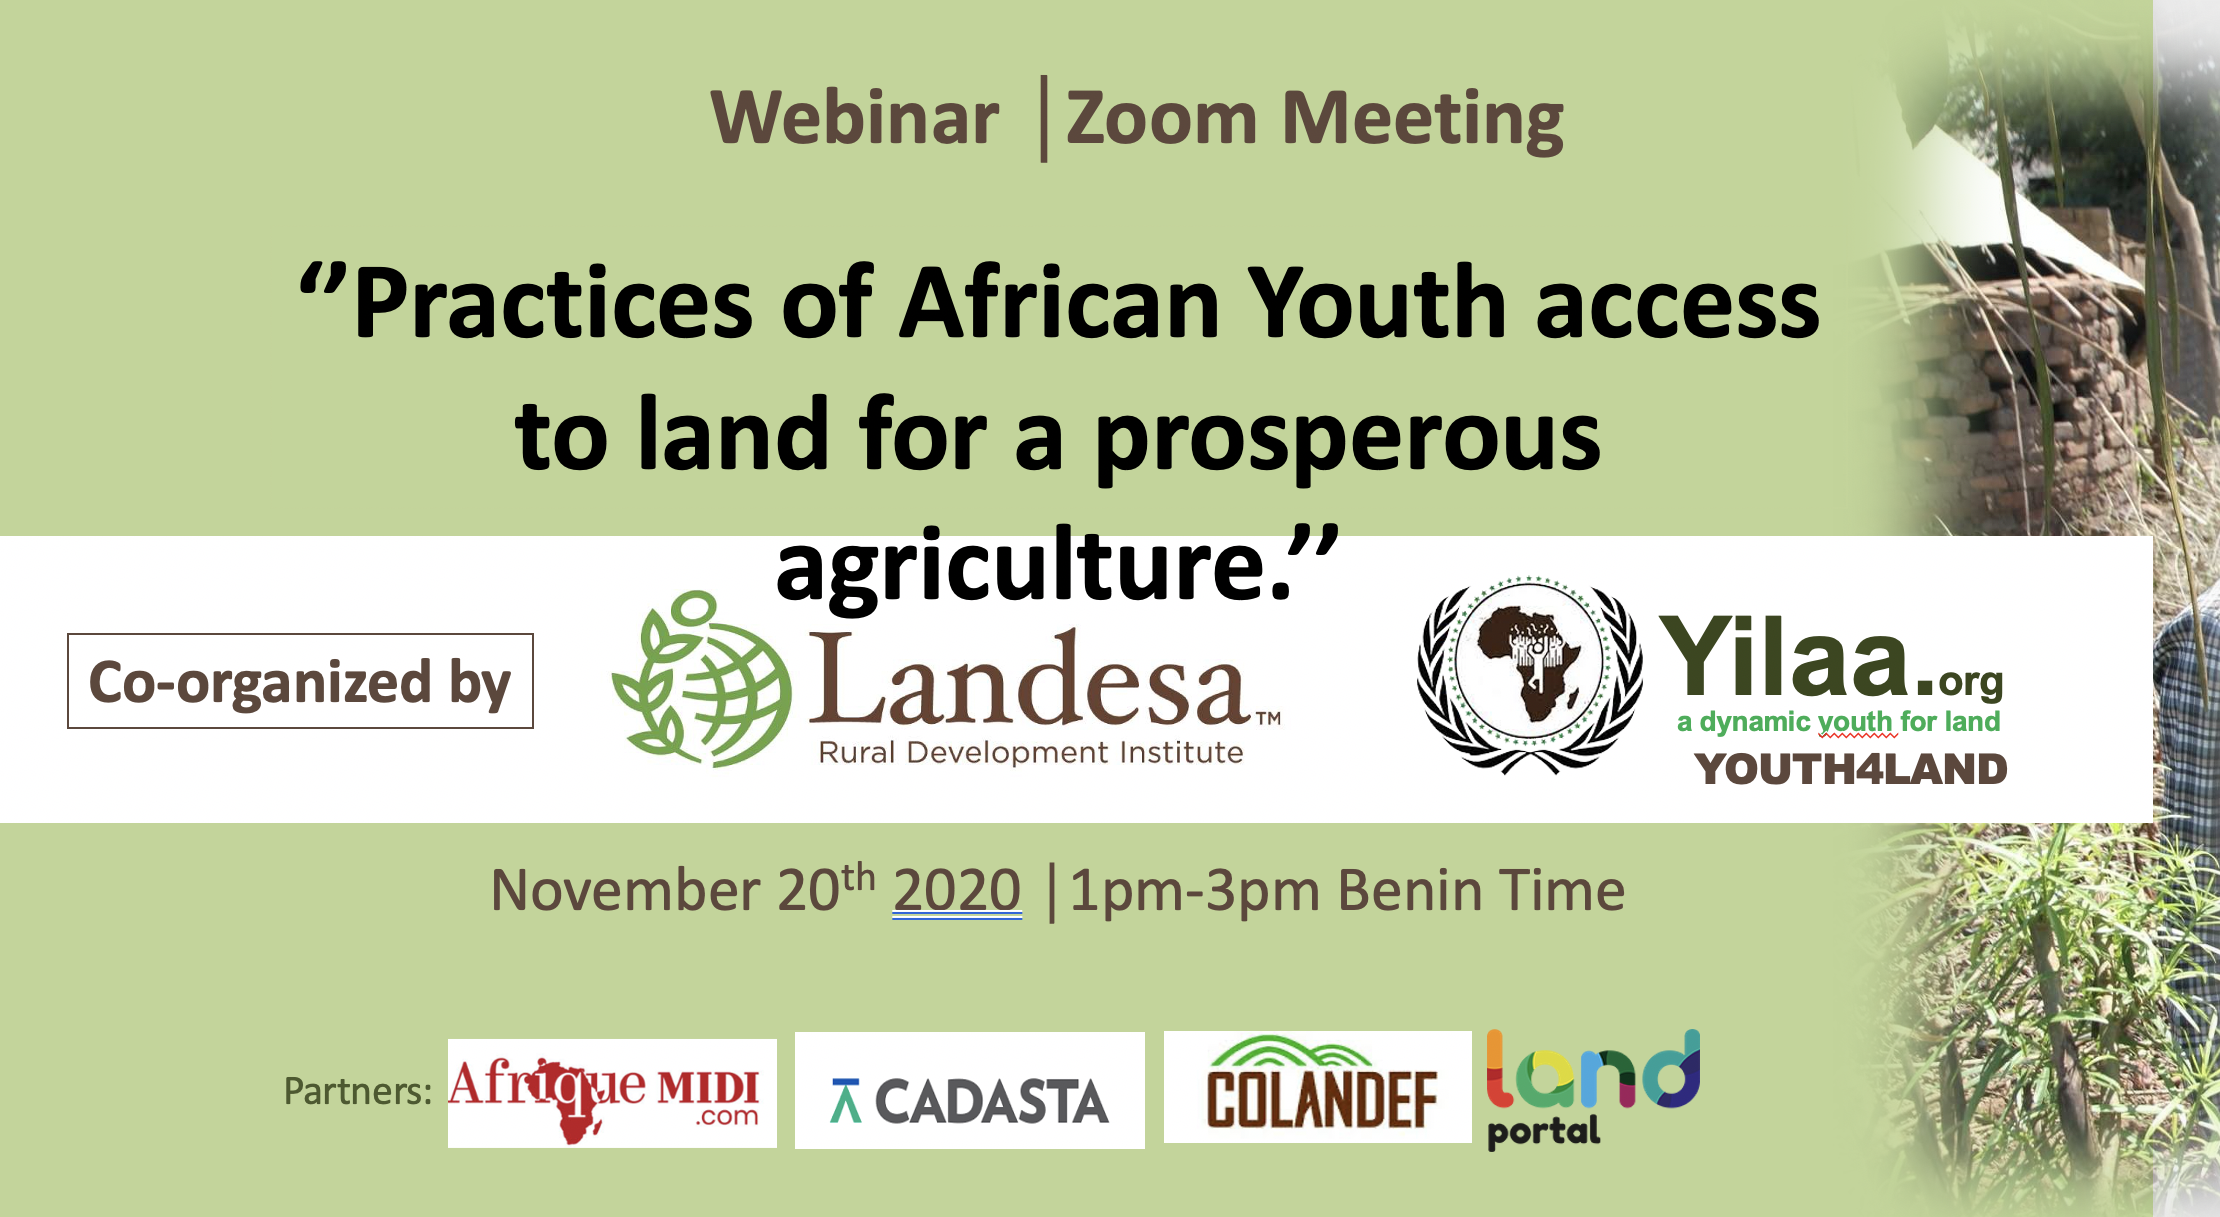 'Practices of African Youth access to land for a prosperous agriculture